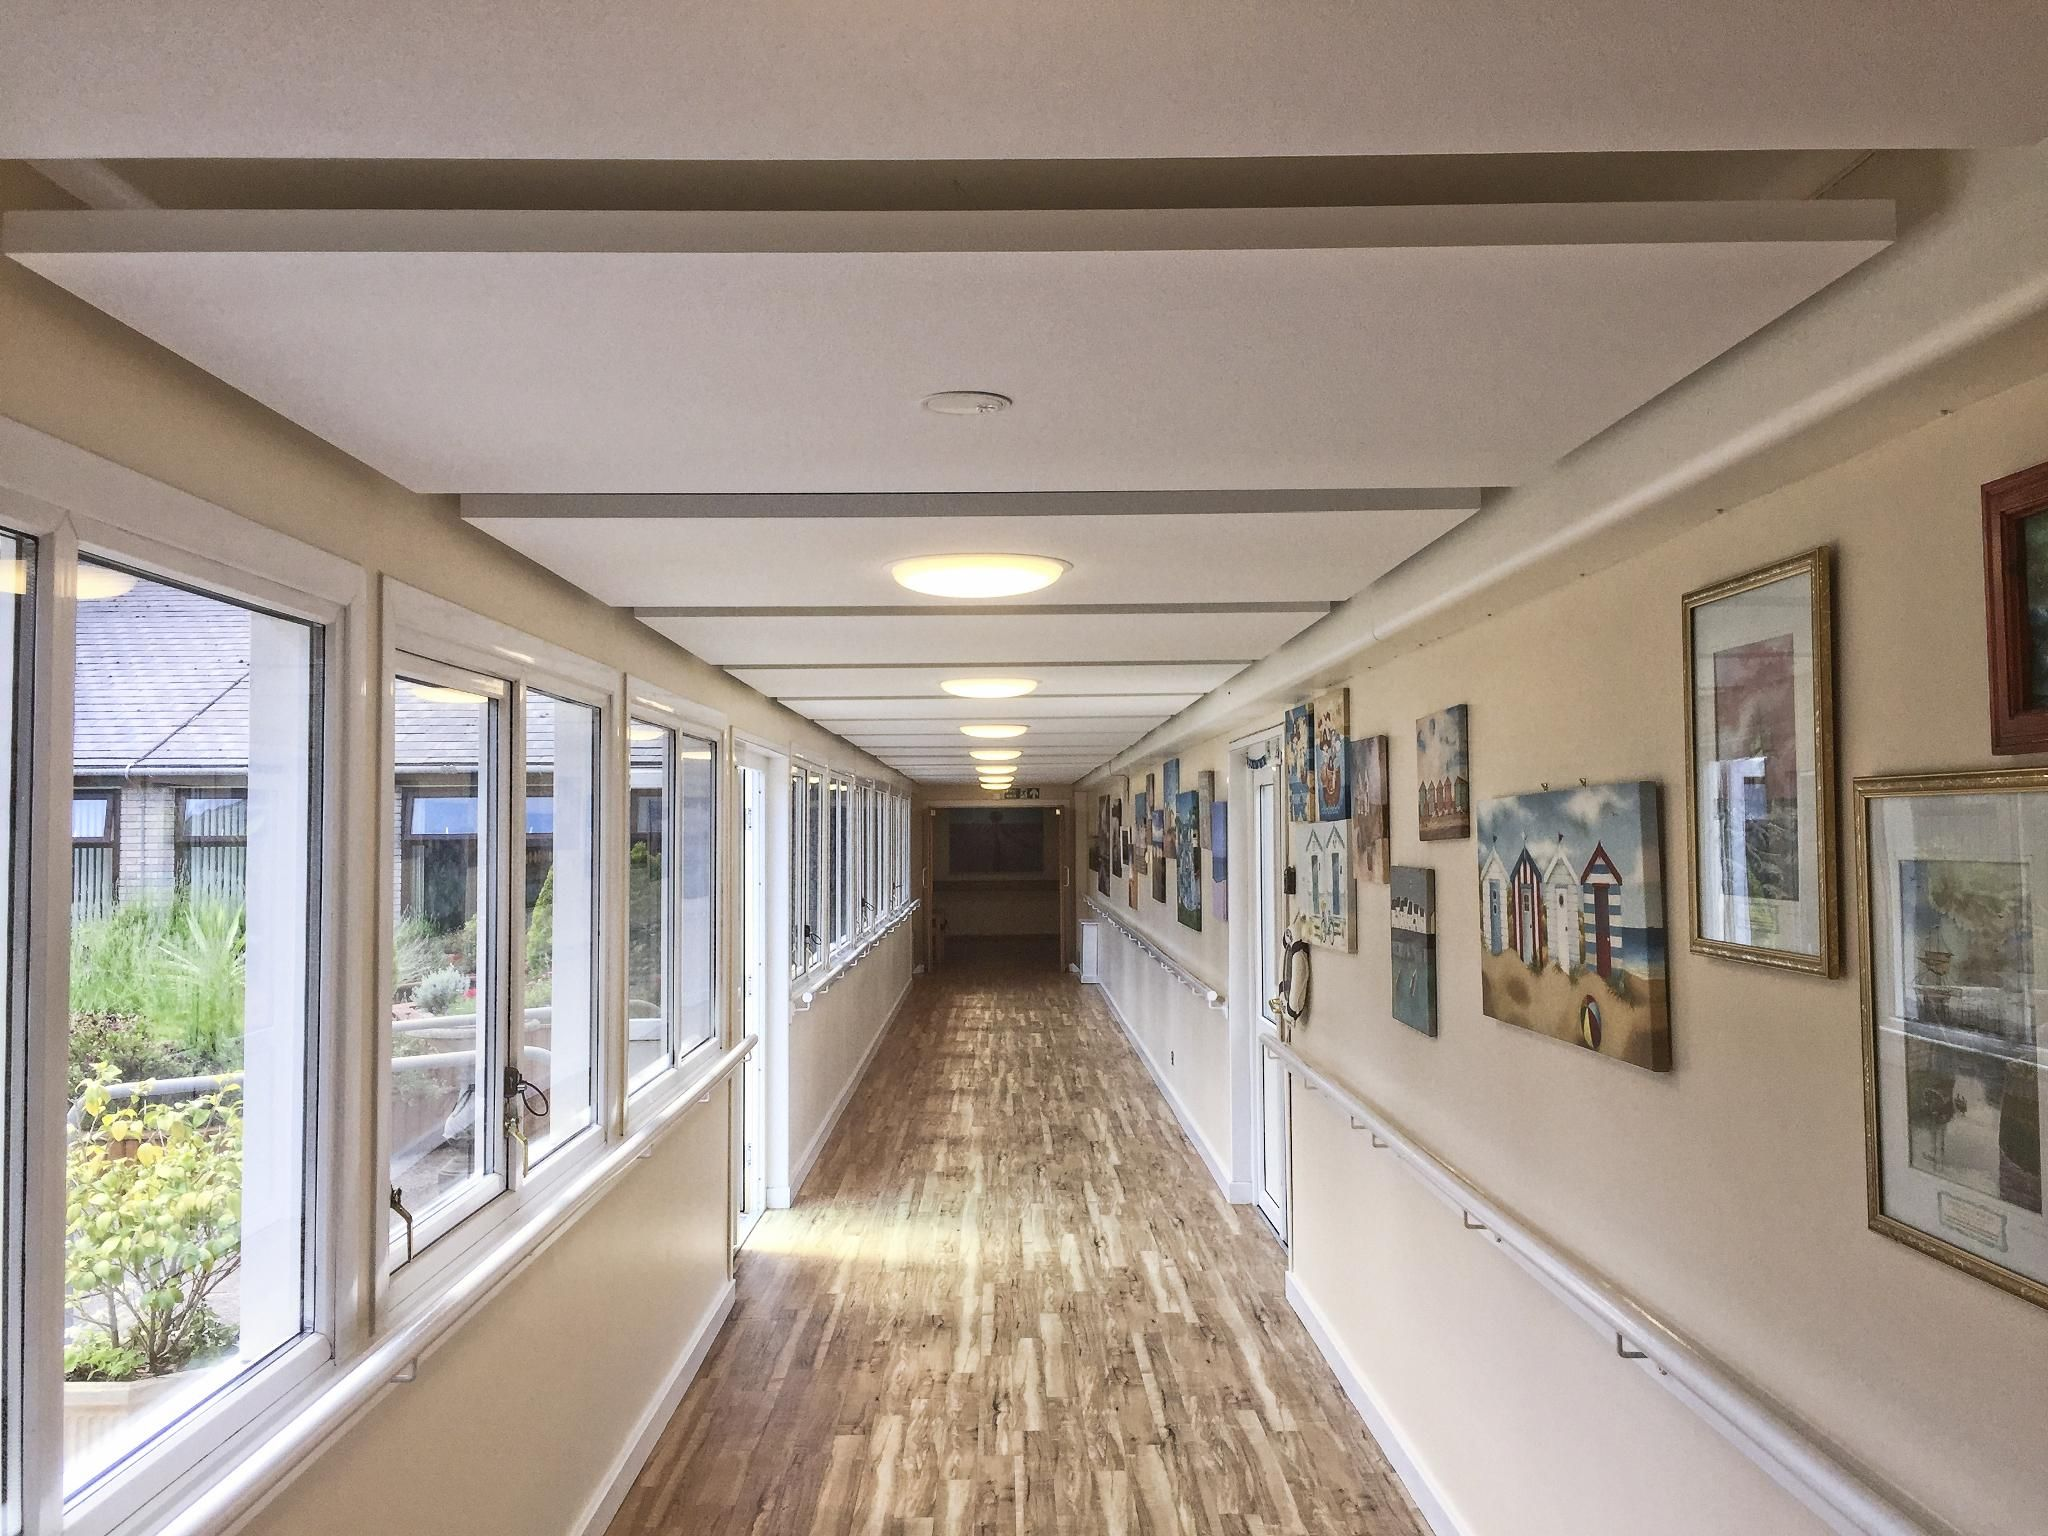 Corridor Design Ceiling: Pin By Armstrong Ceilings On Healthcare Ceilings